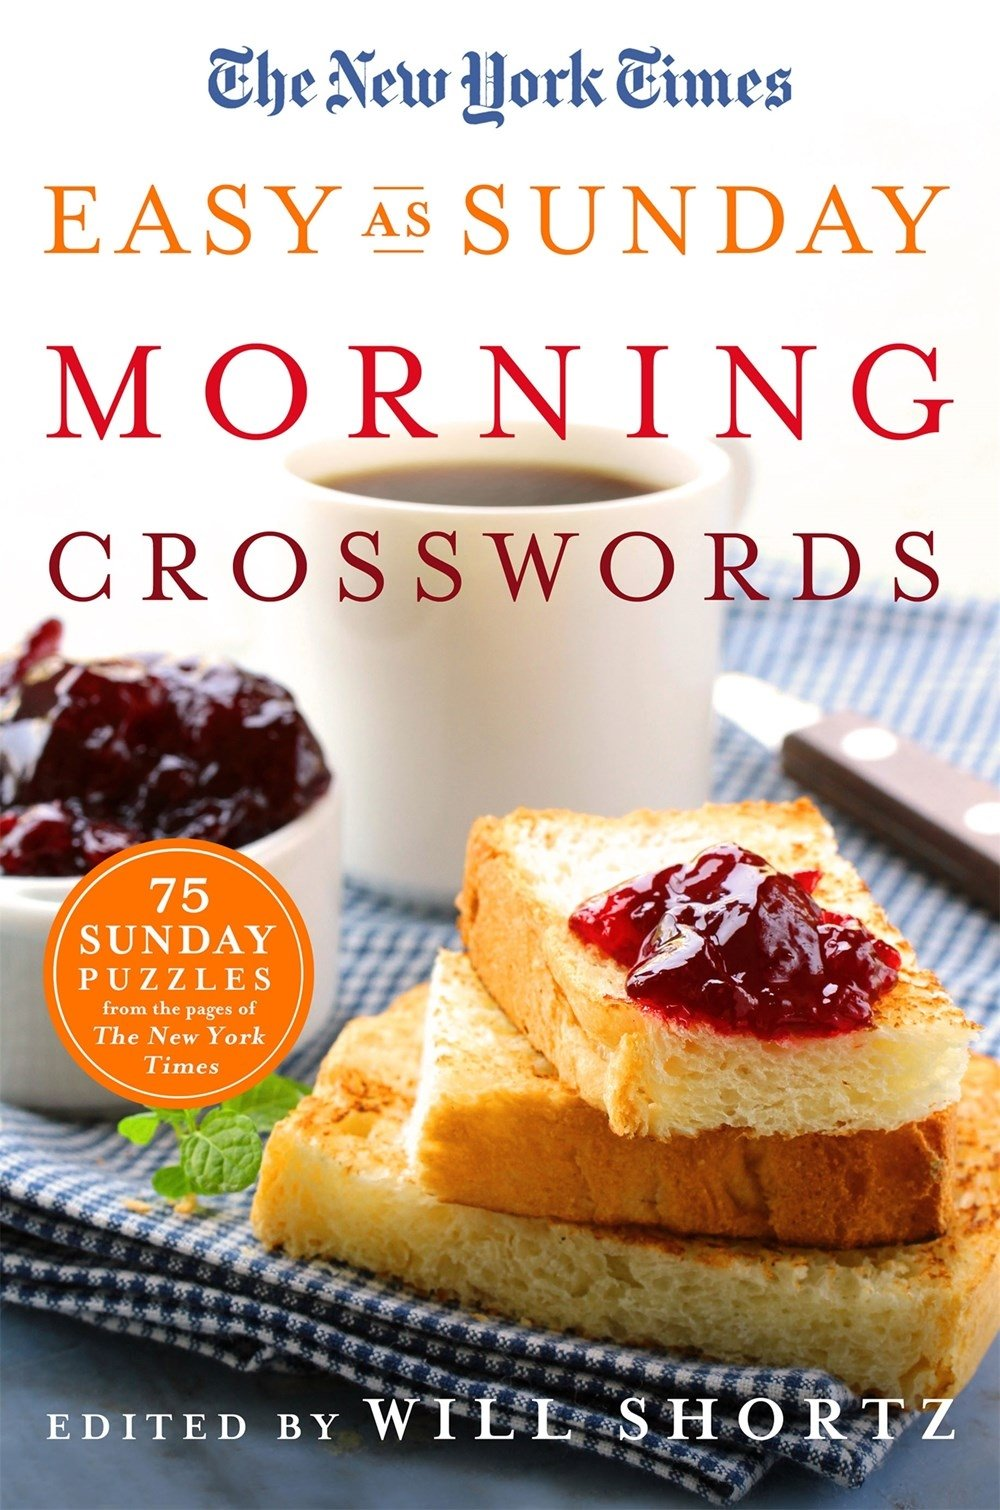 The New York Times Easy as Sunday Morning Crosswords: 75 Sunday Puzzles from the Pages of The New York Times PDF